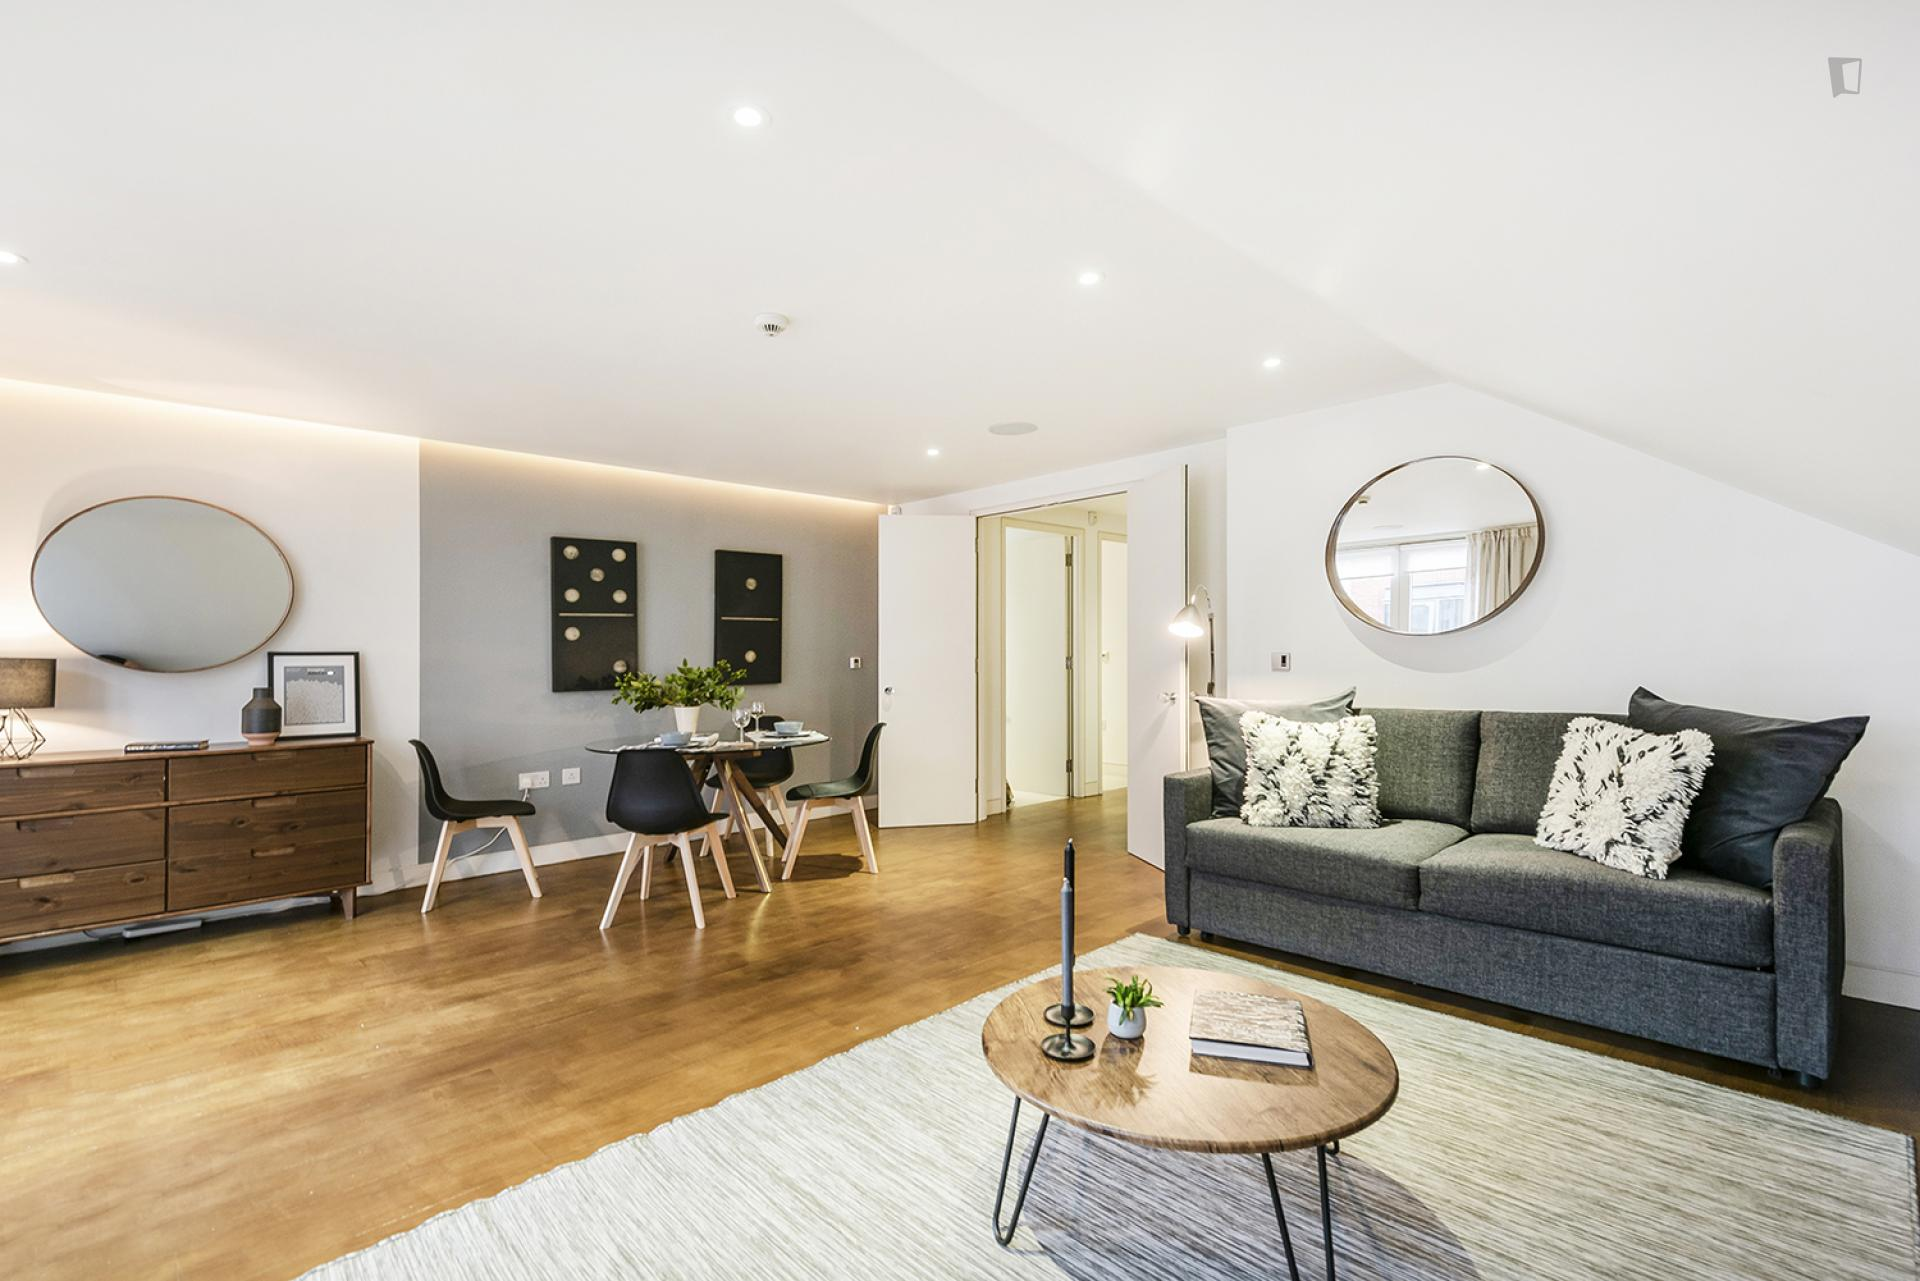 Bedford - Amazing apartment in London city centre